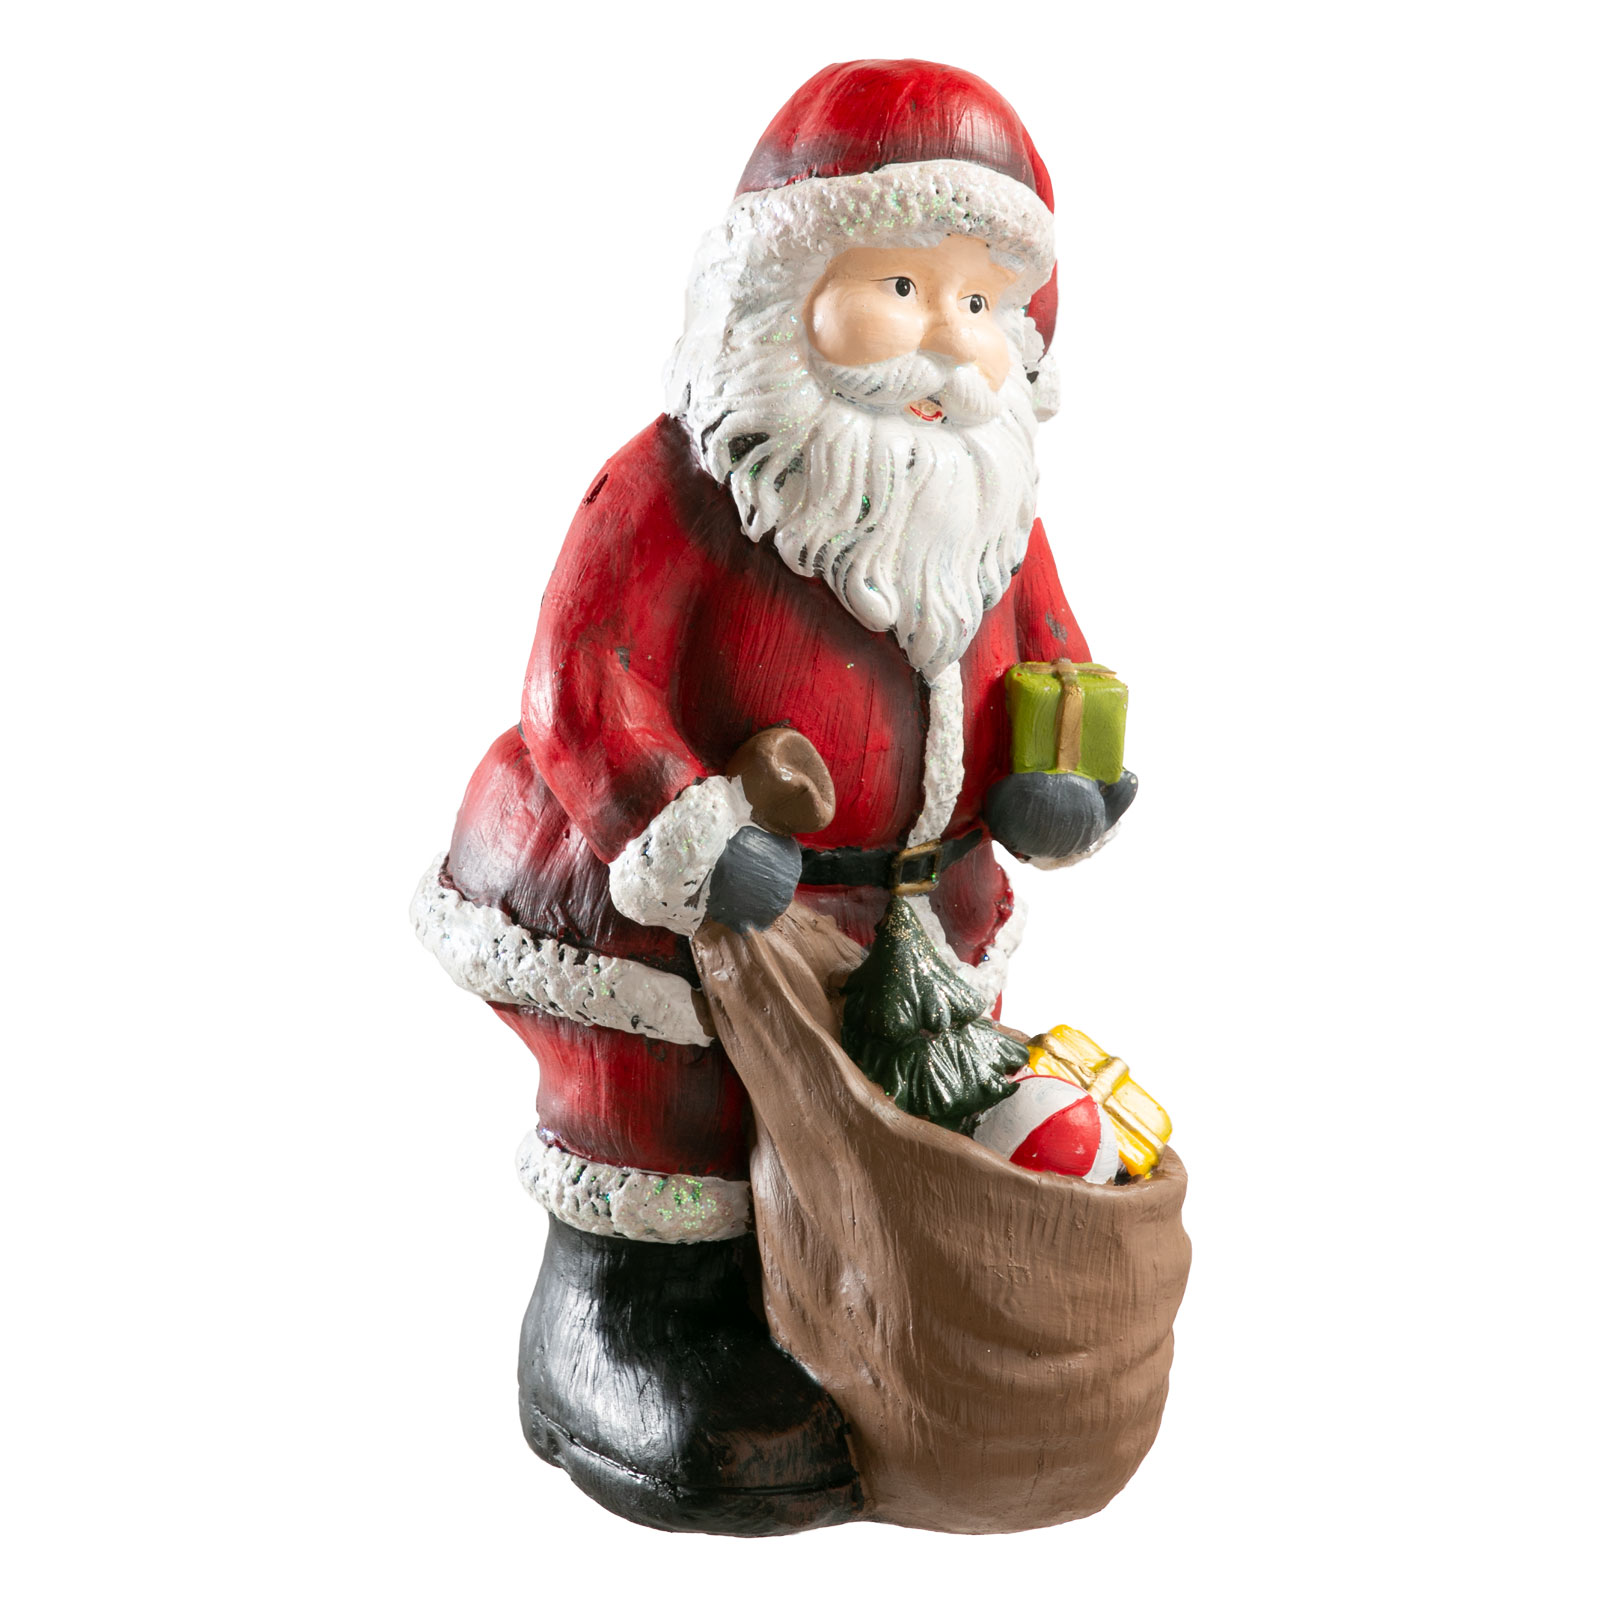 weihnachtsmann rot nikolaus geschenksack santa claus deko figur weihnachten ebay. Black Bedroom Furniture Sets. Home Design Ideas